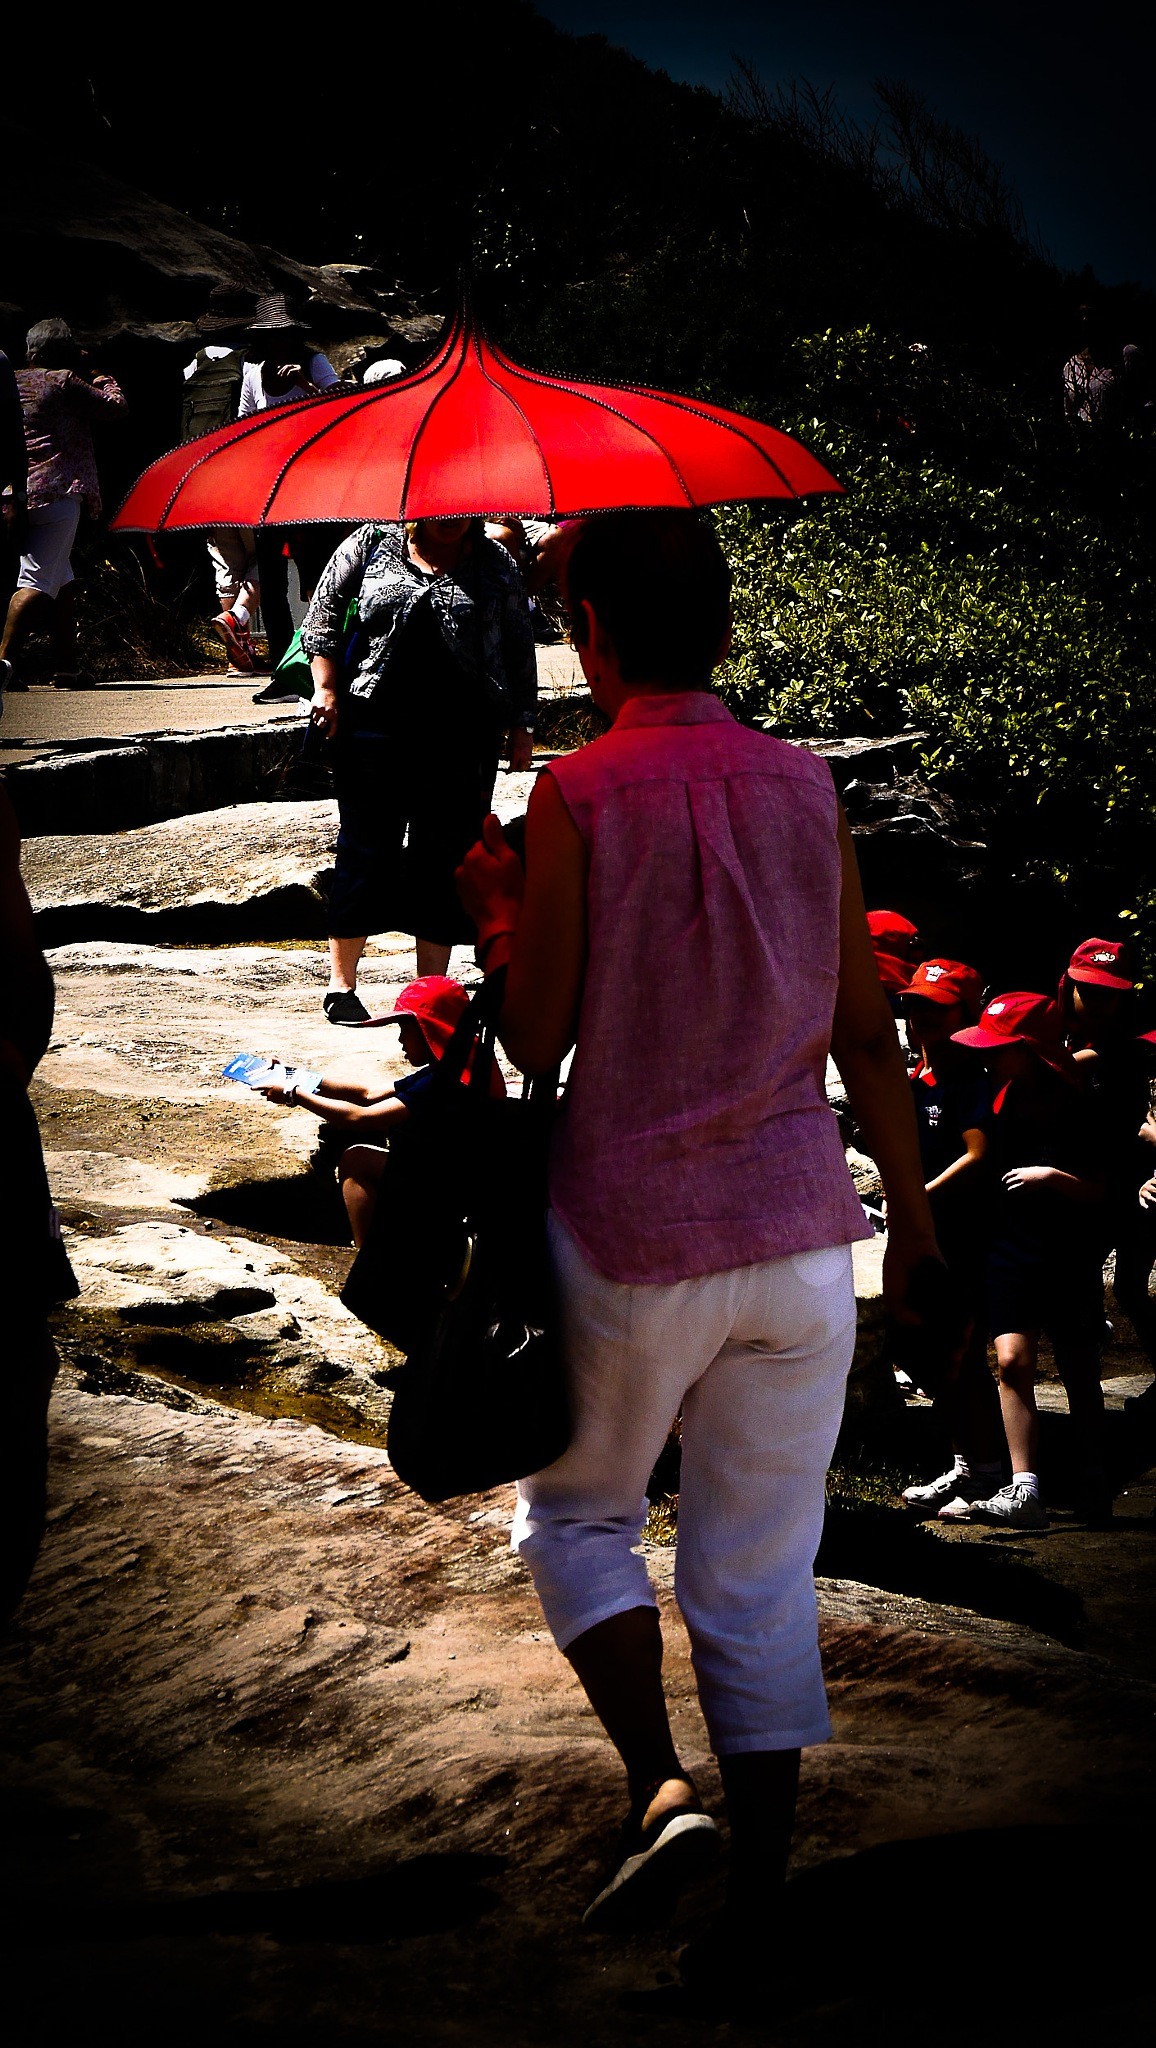 red umbrella by tonyhart